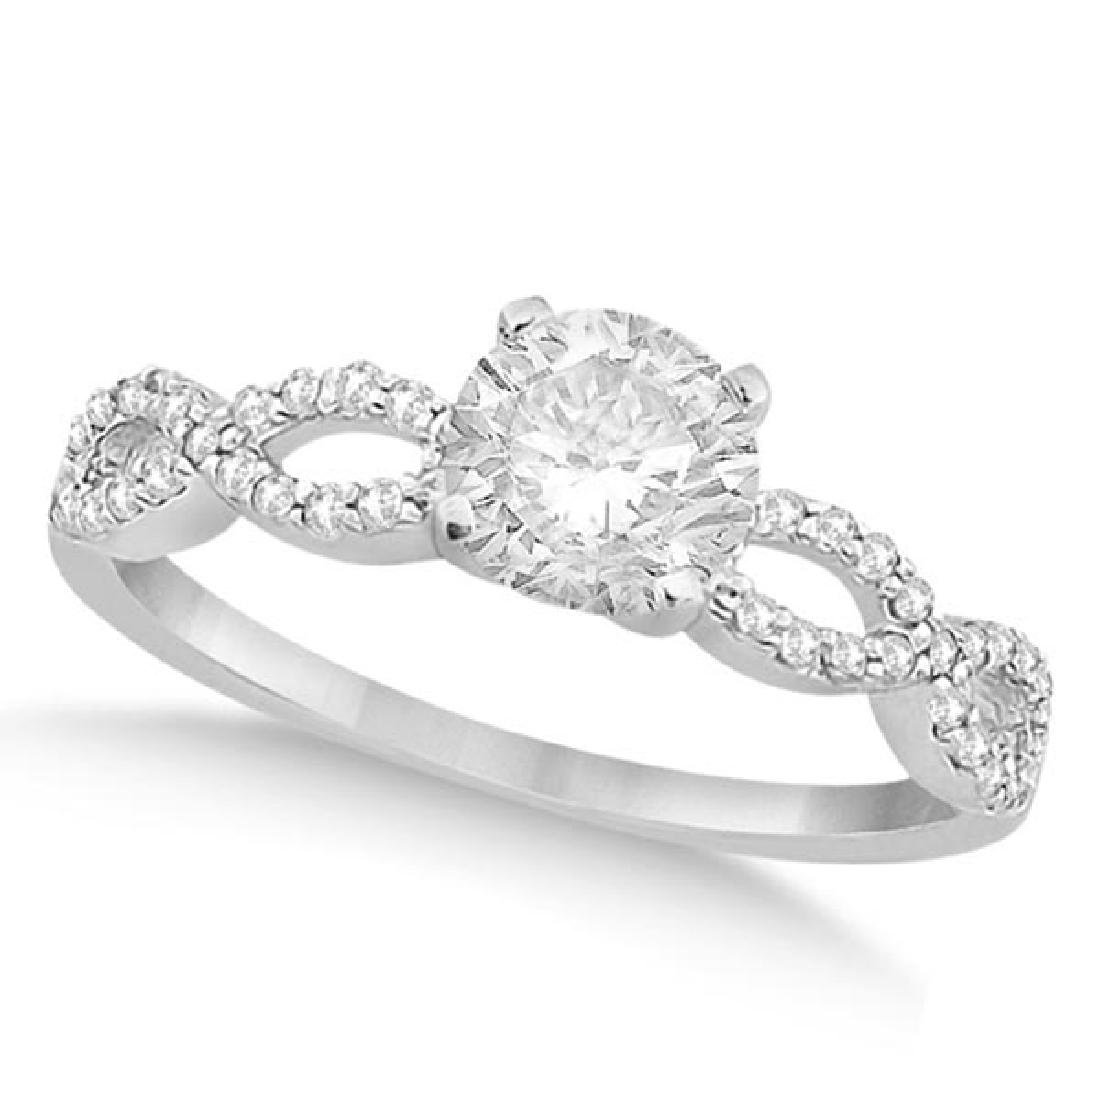 Twisted Infinity Round Diamond Engagement Ring 14k Whit